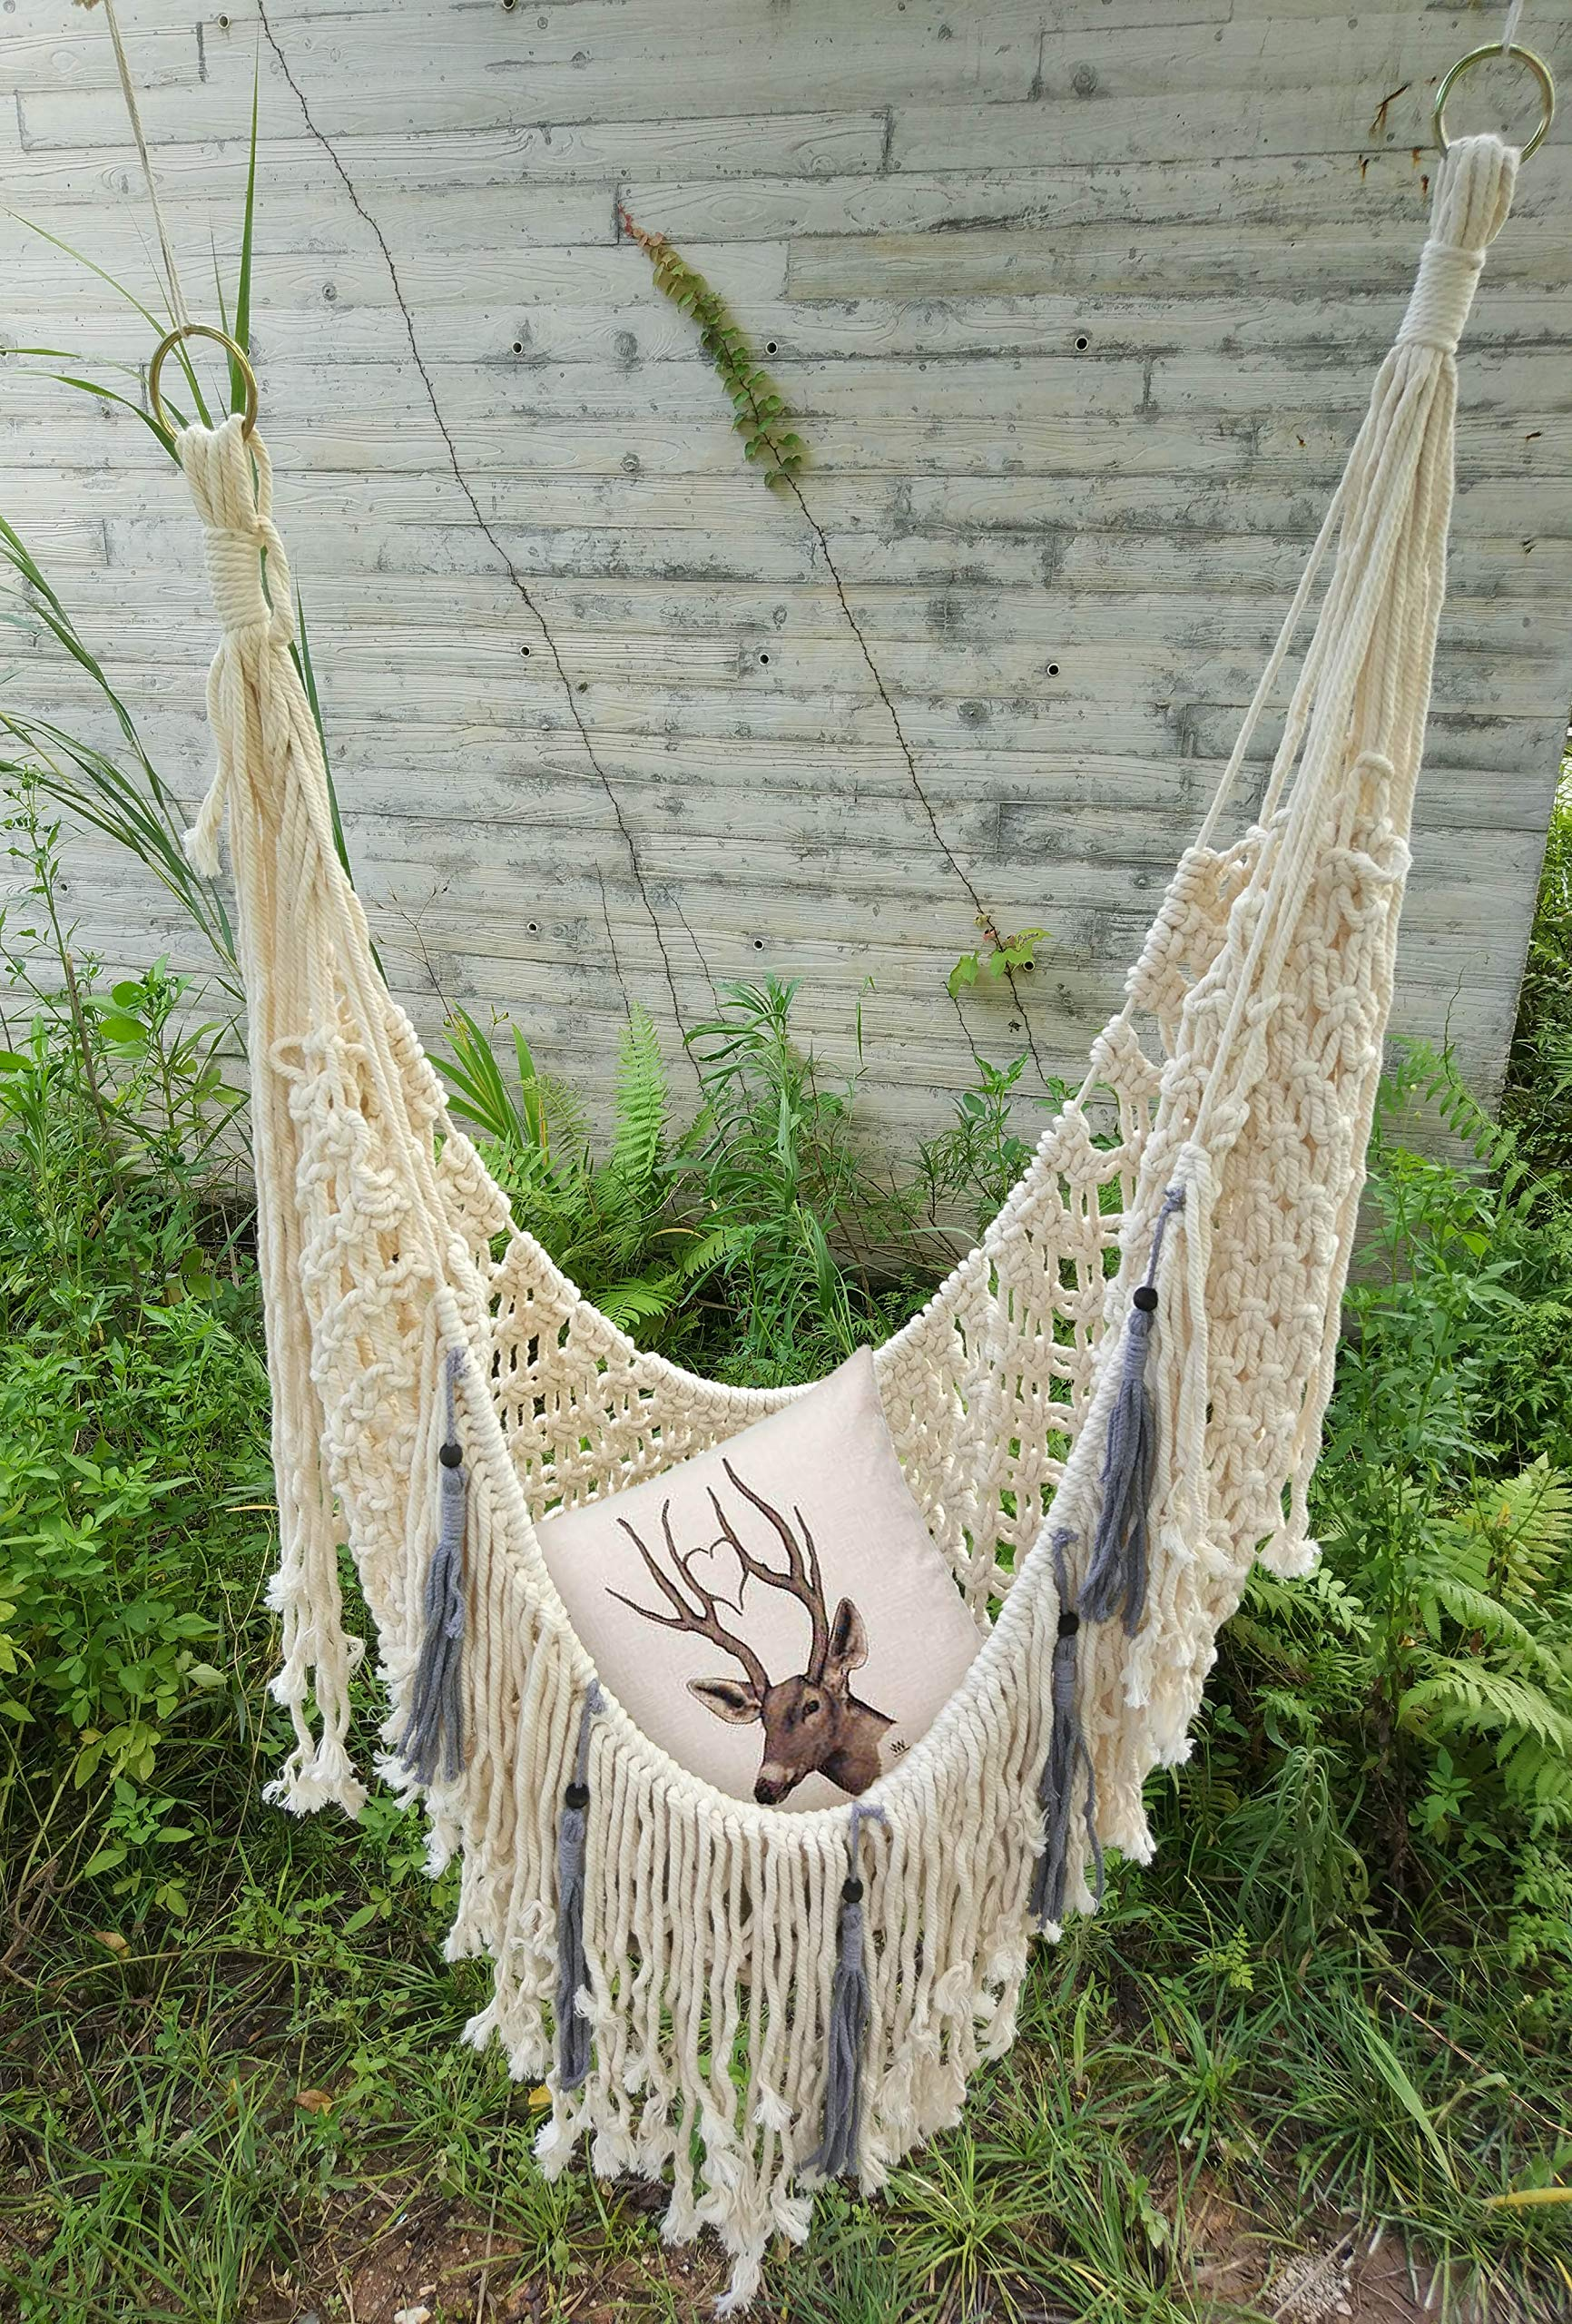 RISEON Handmade Boho Large Macrame Fringe Hammock Chair Macrame Net Swing, Hanging Chair Swing for Beach, Yard, Bedroom, Patio, Porch, Indoor, Outdoor, Wedding Decor